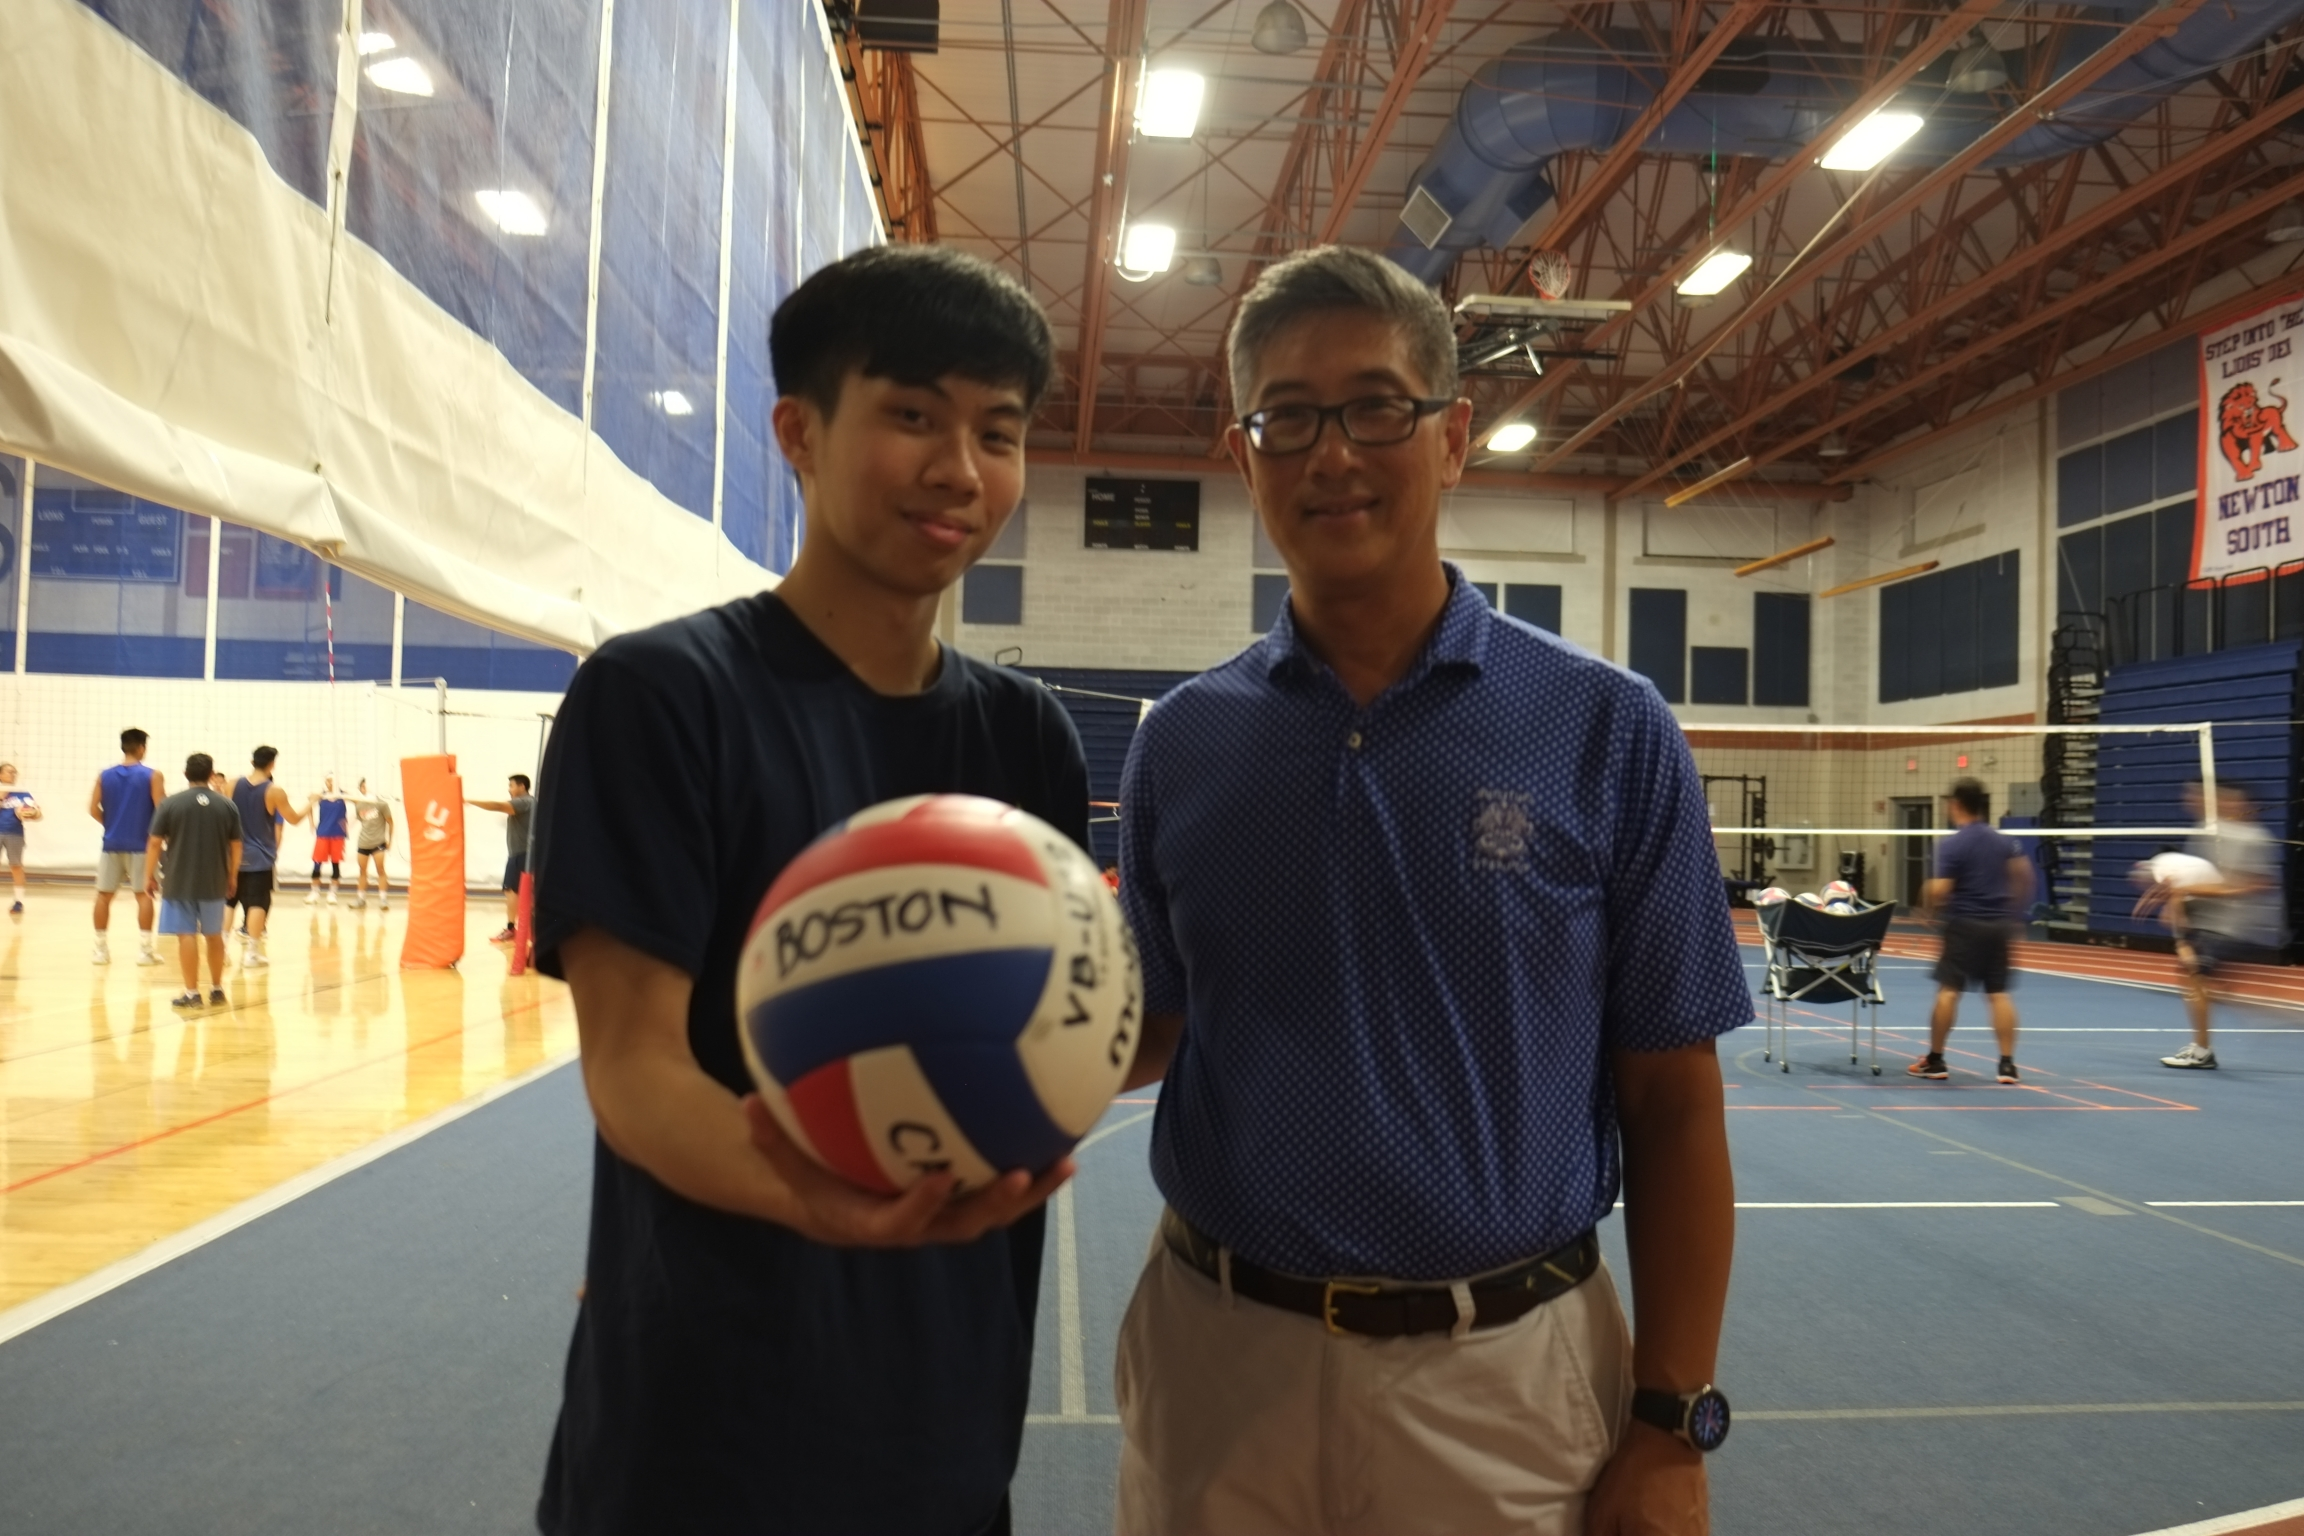 A young Asian man and older Asian man stand next to each other with a volleyball